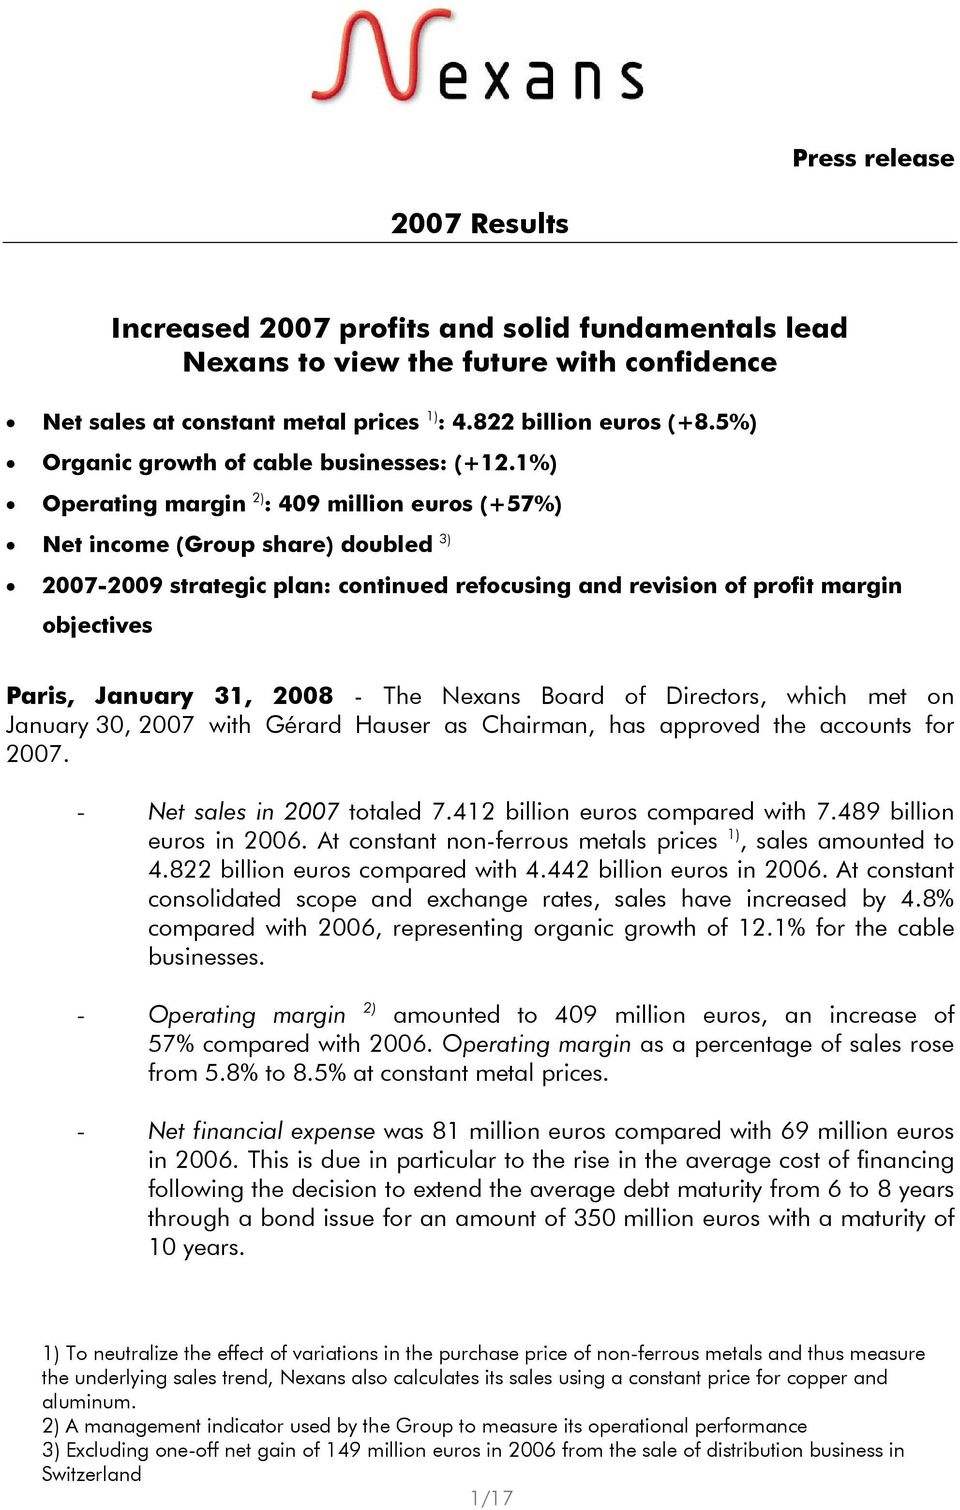 1%) Operating margin 2) : 409 million euros (+57%) Net income (Group share) doubled 3) 2007-2009 strategic plan: continued refocusing and revision of profit margin objectives Paris, January 31, 2008